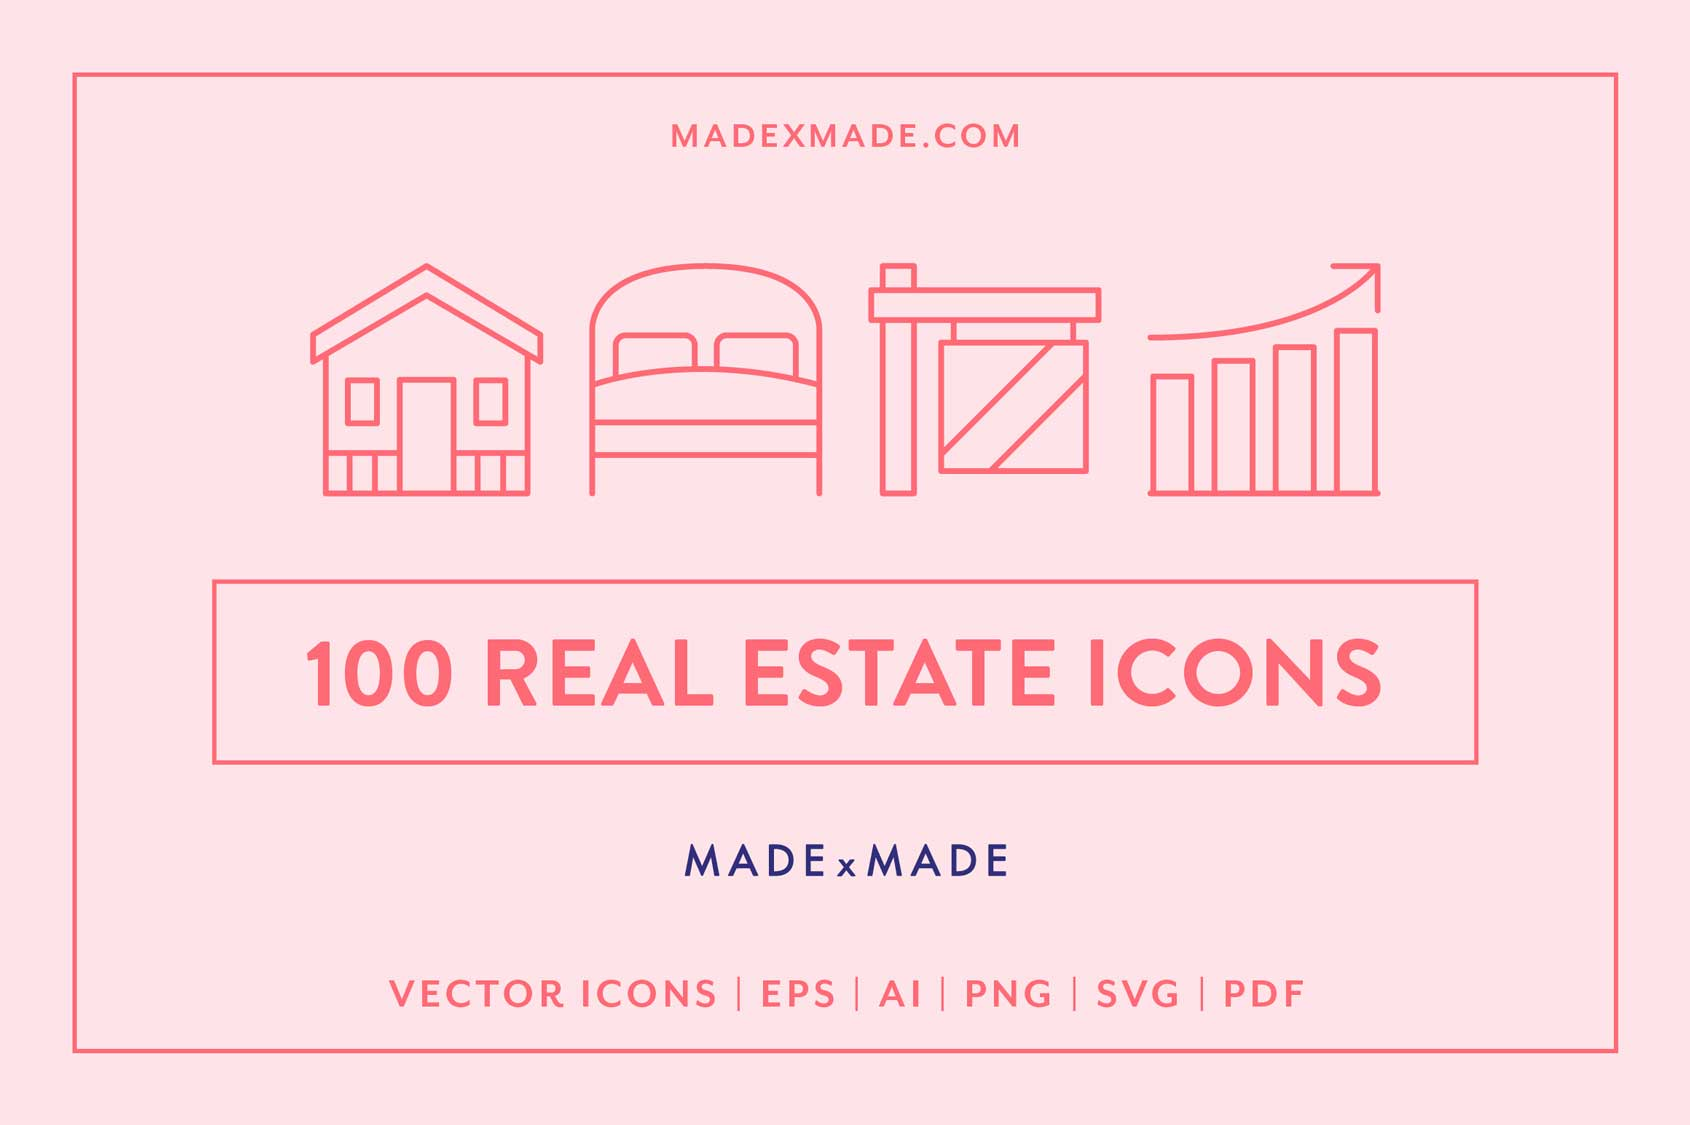 made x made icons real estate